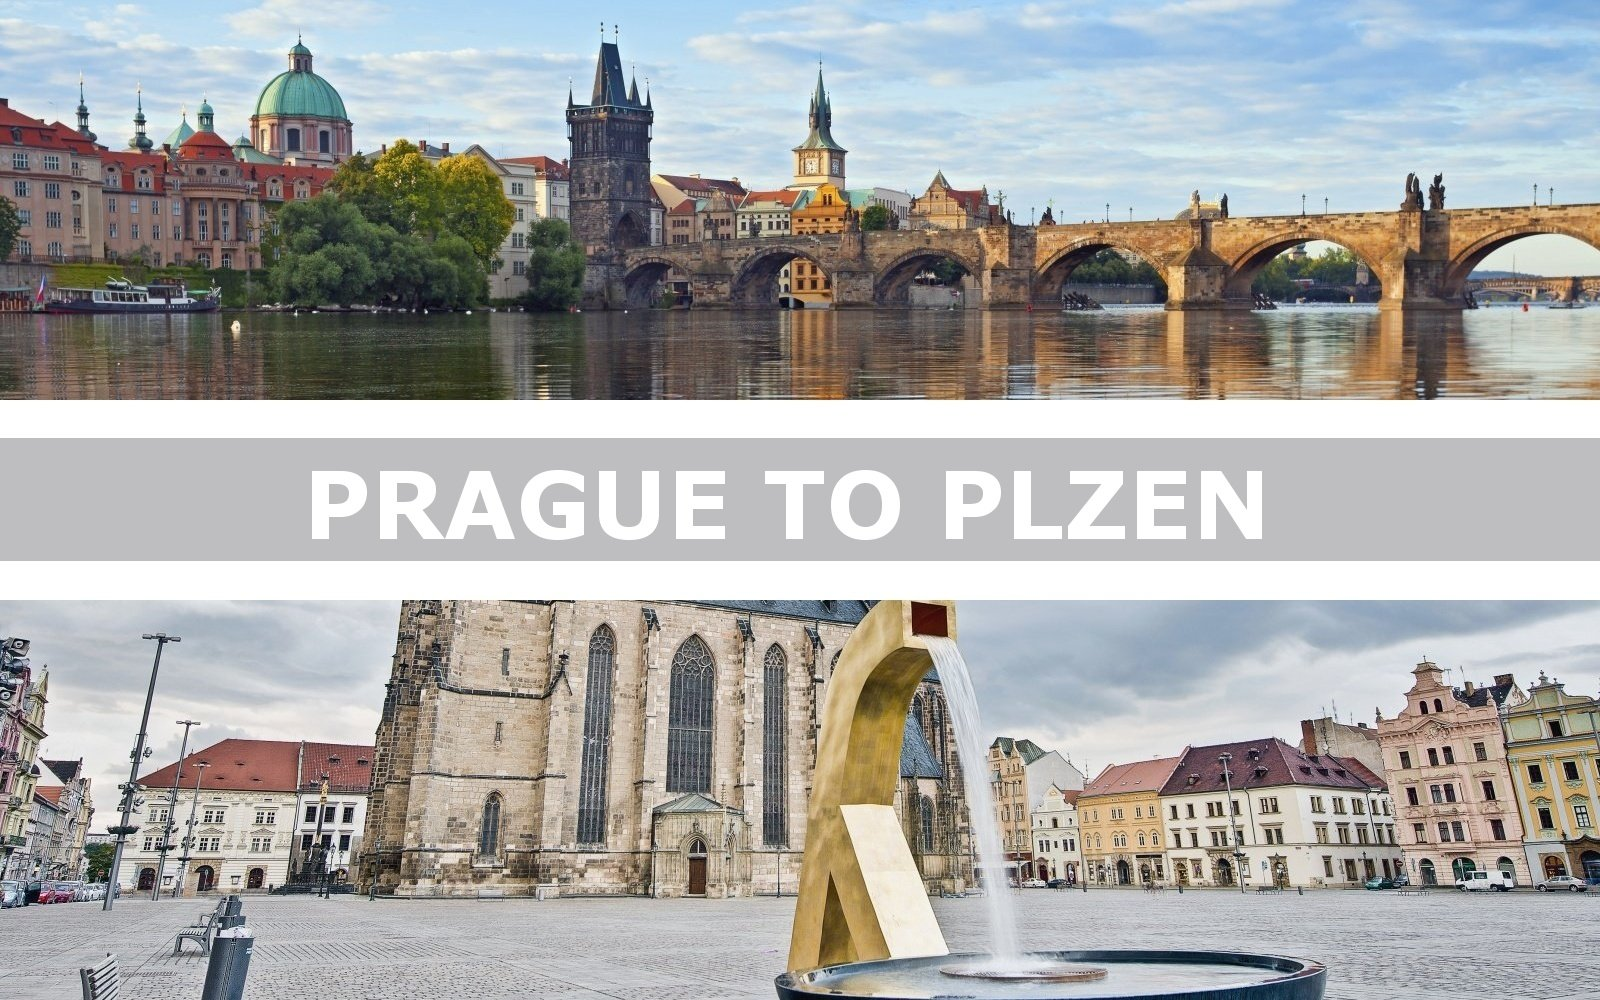 Transportation from Prague to Plzen